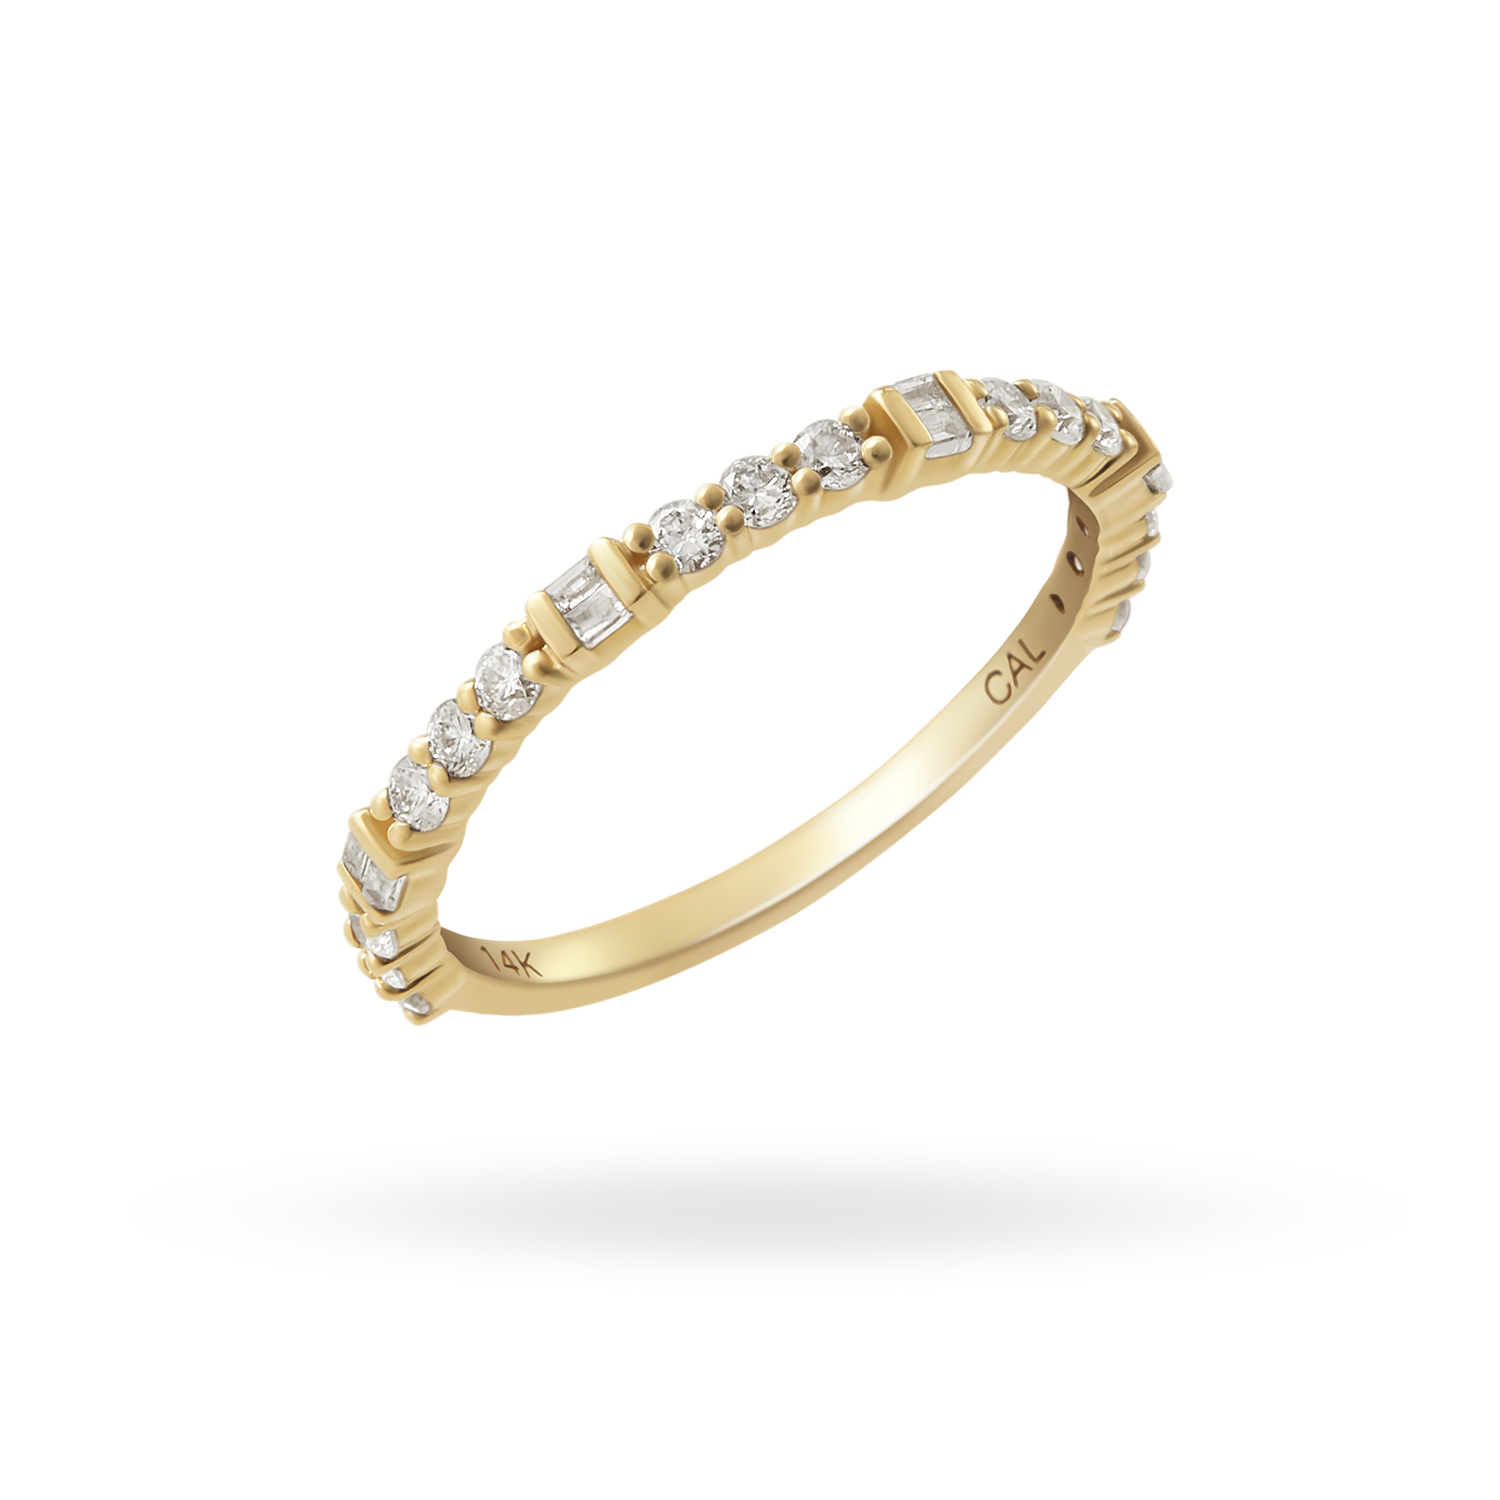 14K Gold Vintage Diamond Ring